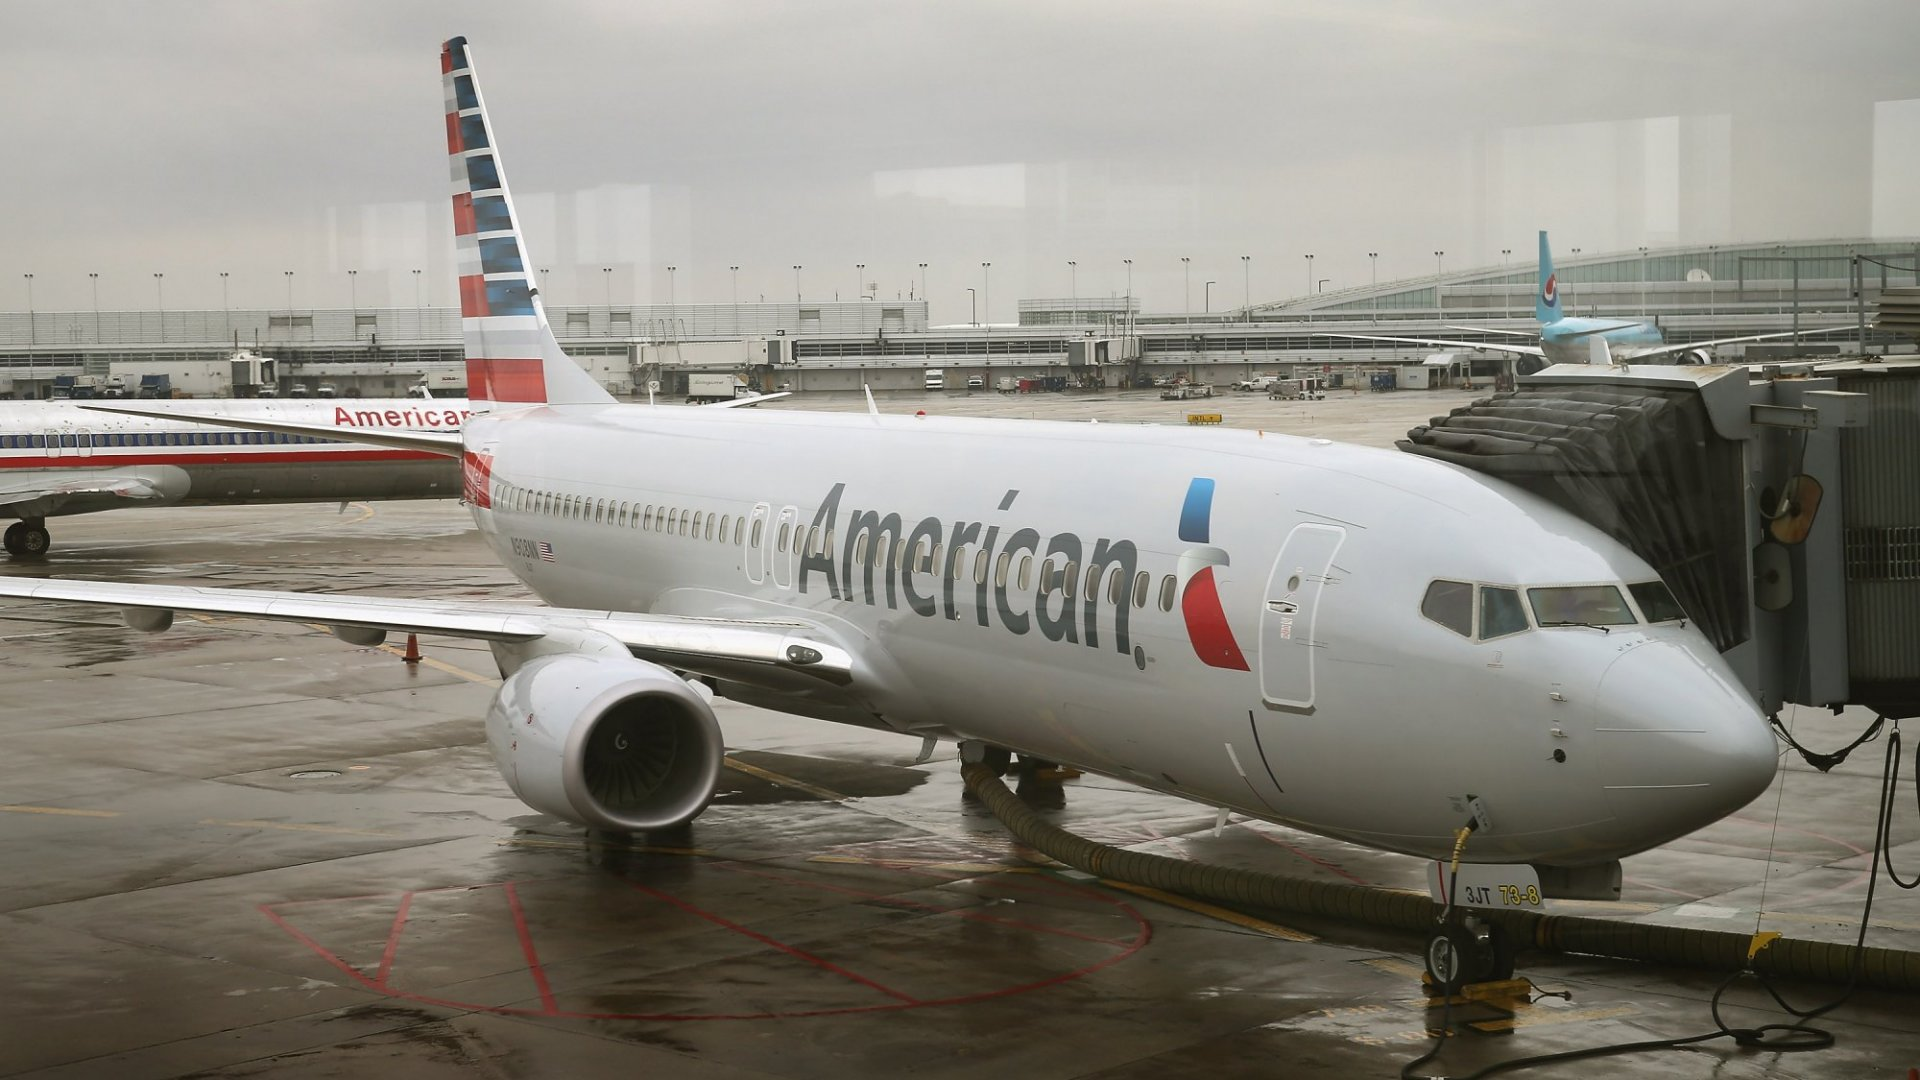 American Airlines Passenger Strips Off Clothes and Attacks Ground Crew in Stunning Video (Was He Even Arrested?)